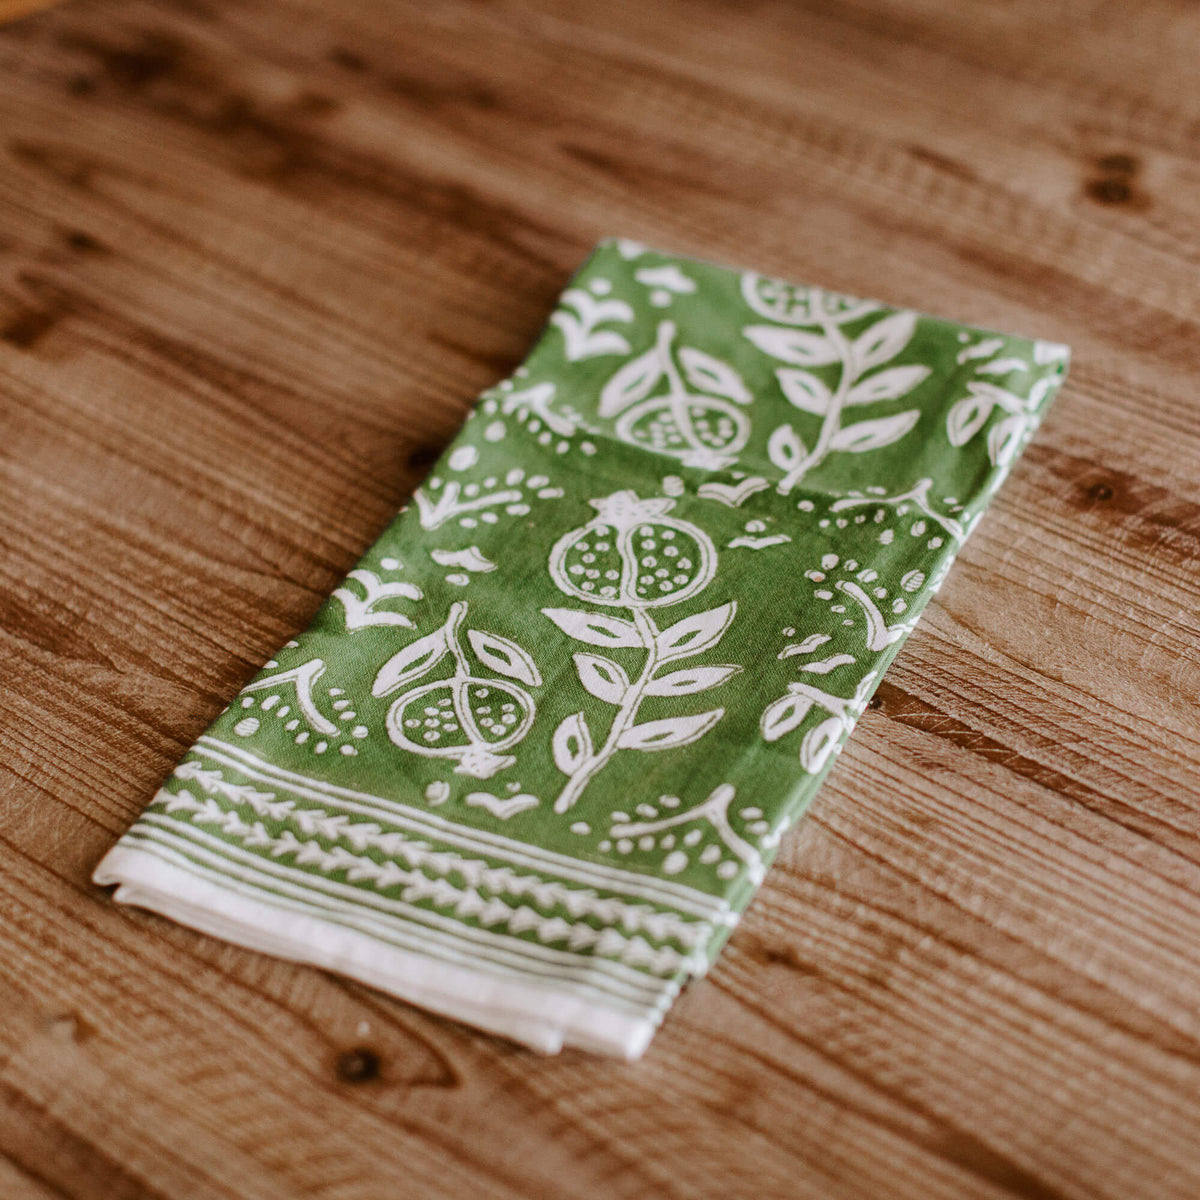 green and white patterned dish towel folded up on a countertop